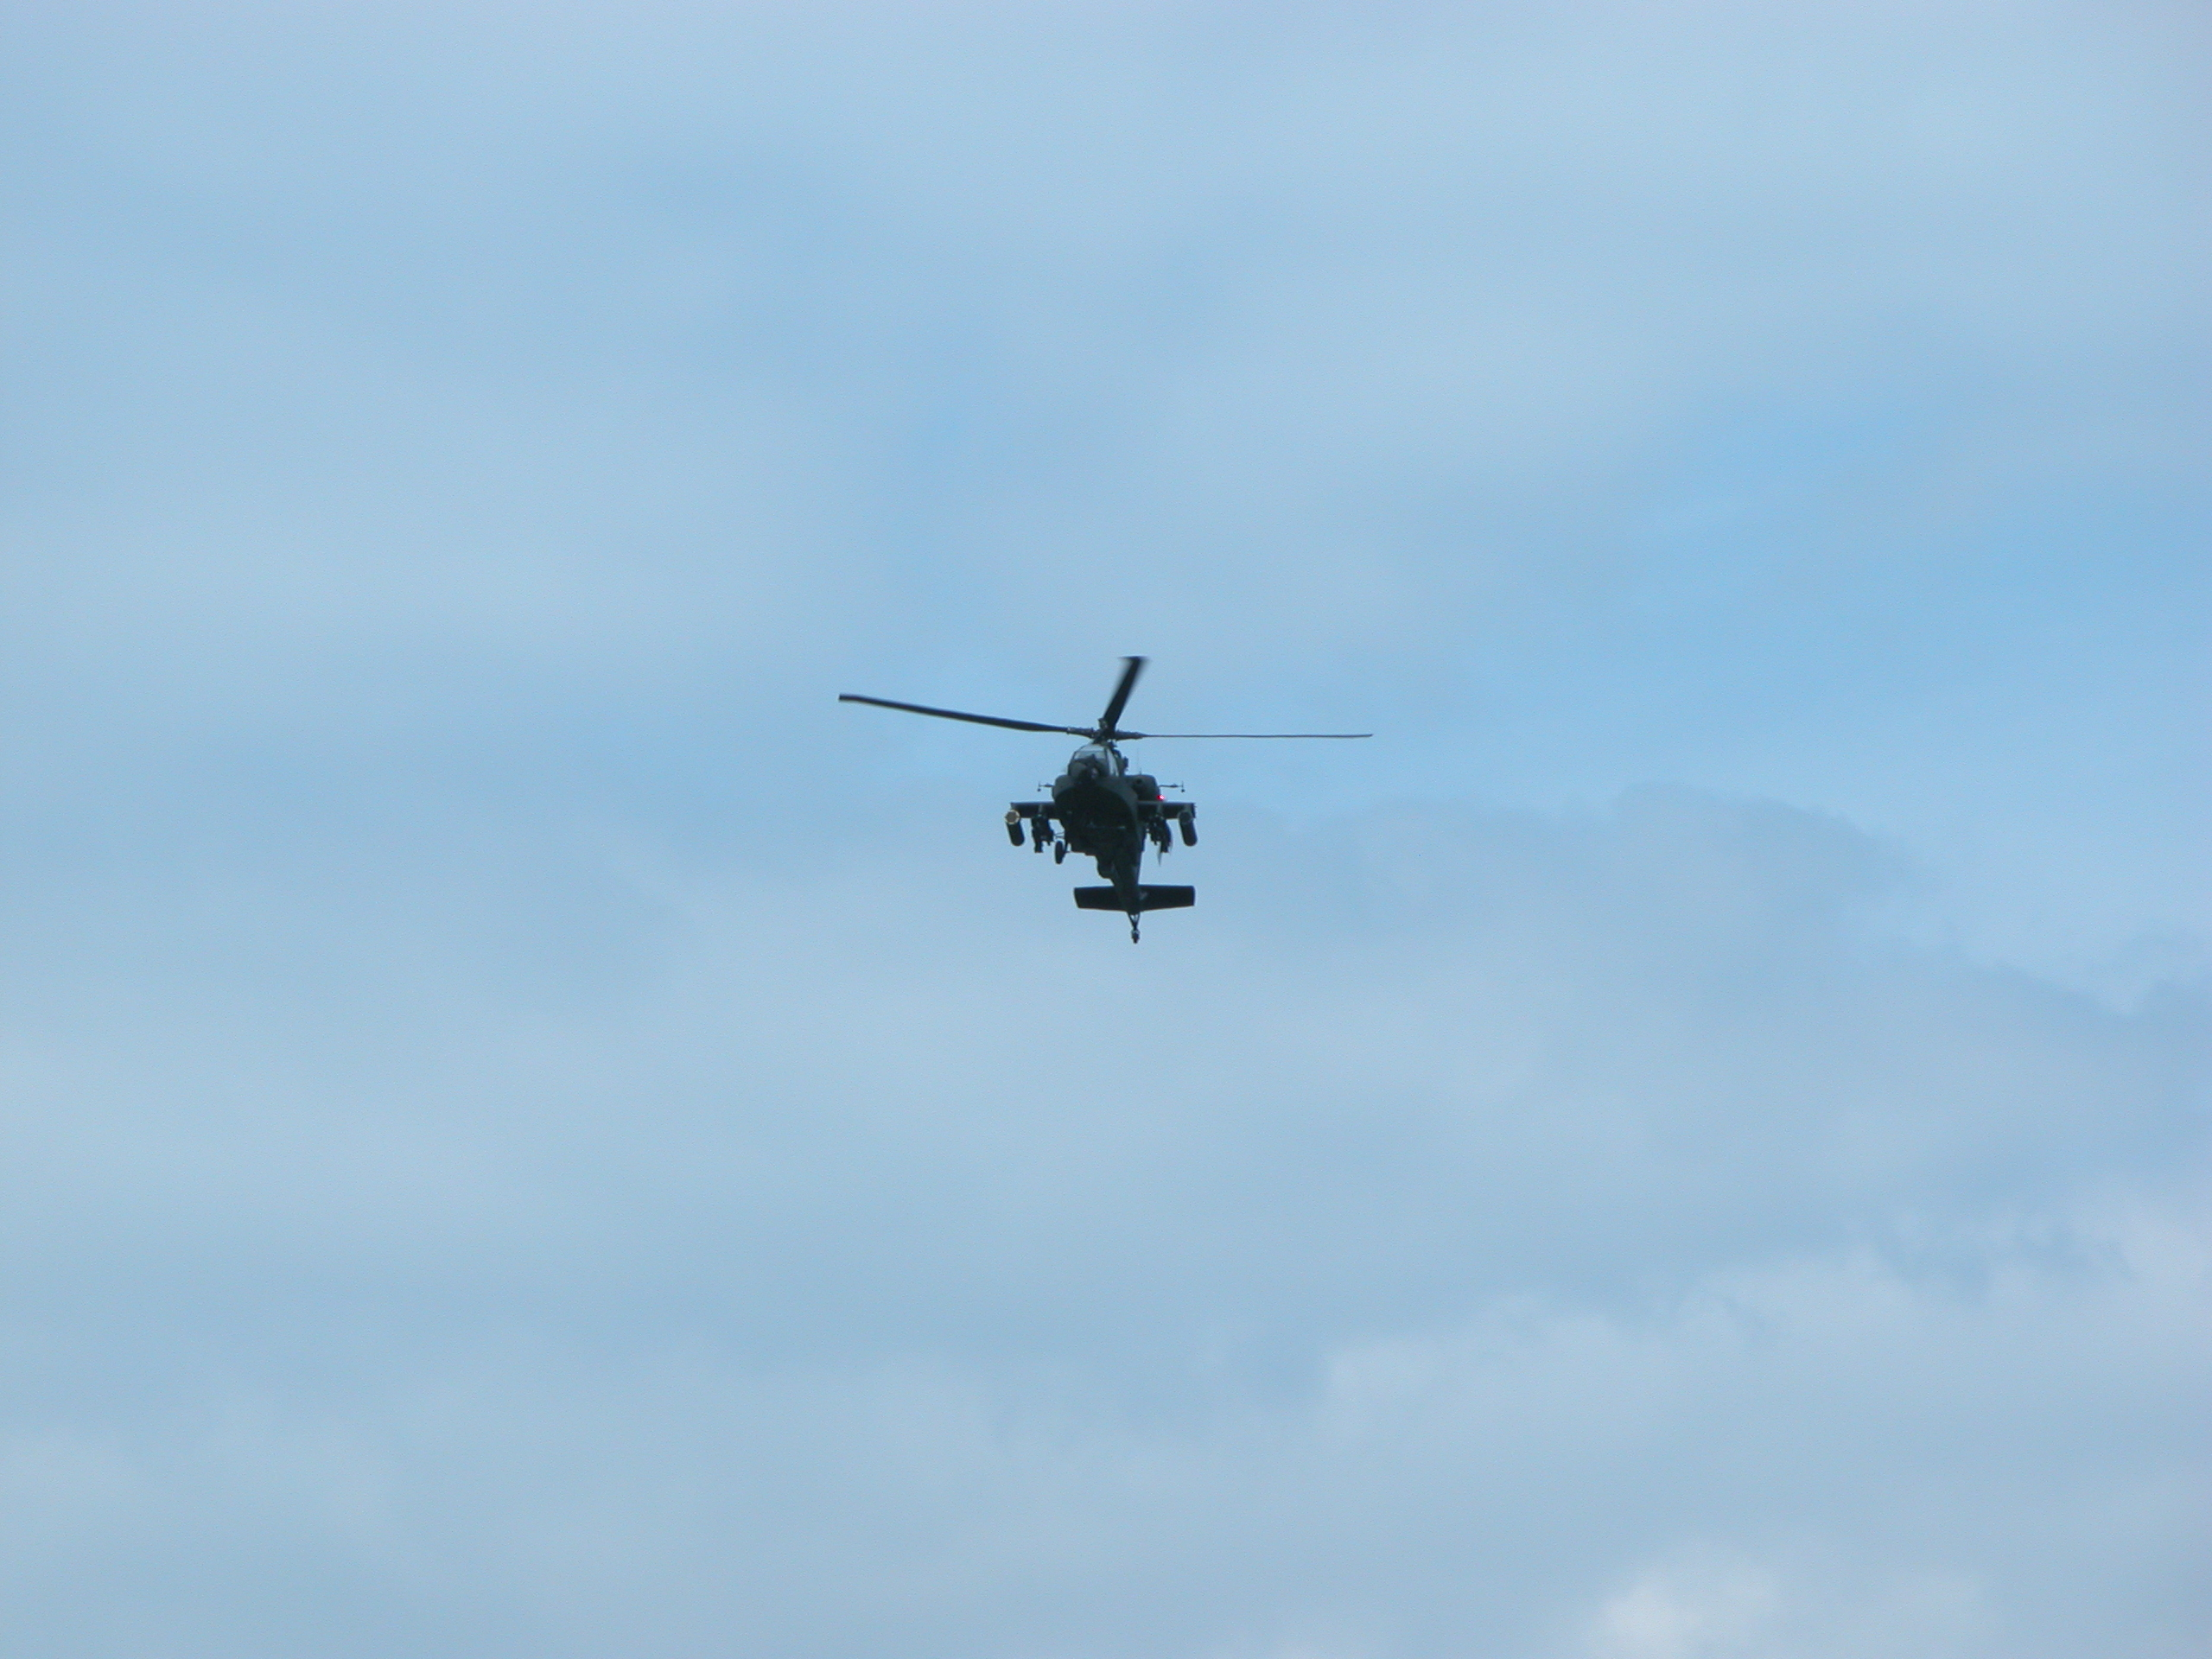 Apache ah-64 attack helichopter militairy chopper sky